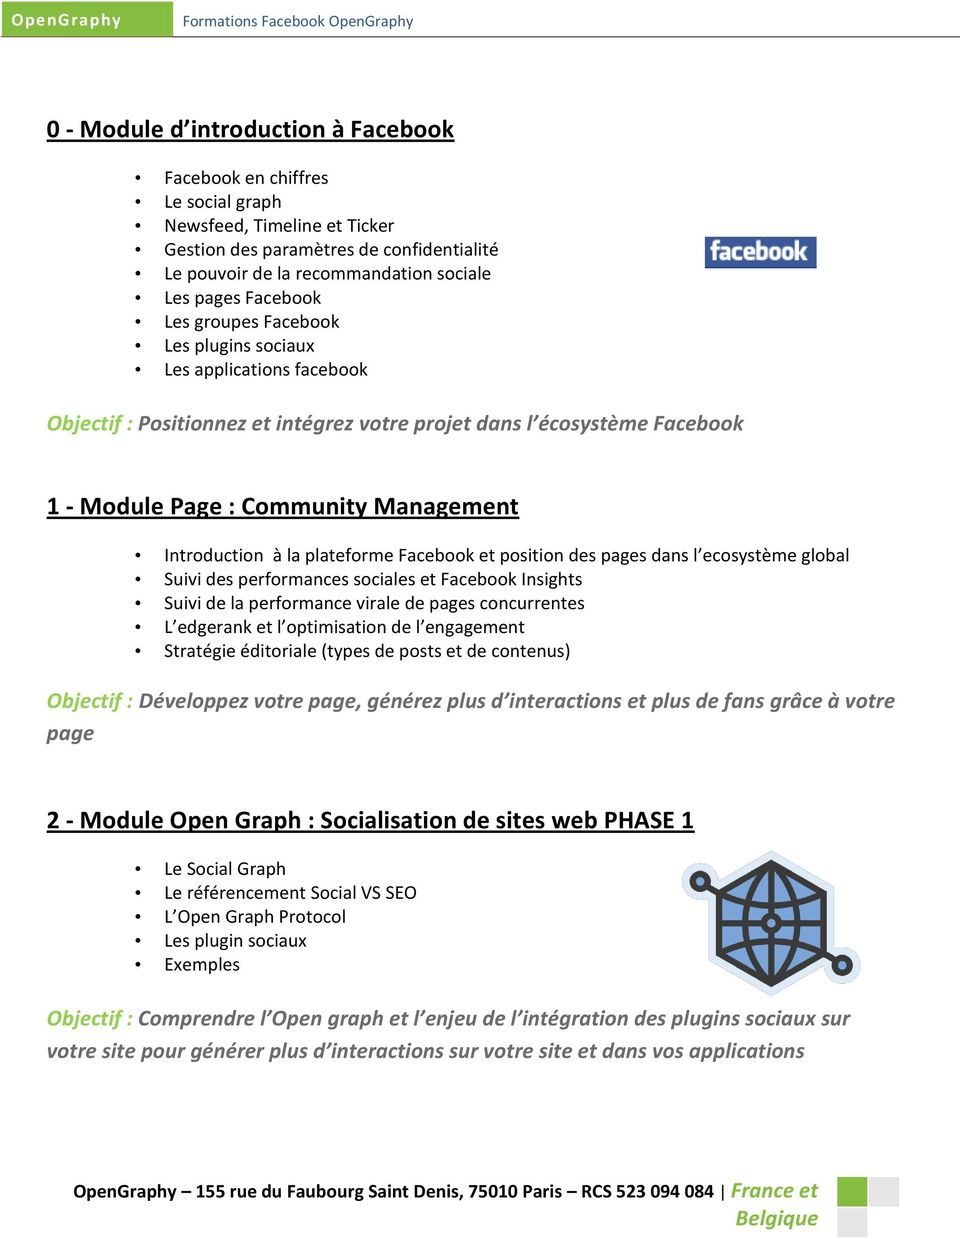 Introduction à la plateforme Facebook et position des pages dans l ecosystème global Suivi des performances sociales et Facebook Insights Suivi de la performance virale de pages concurrentes L